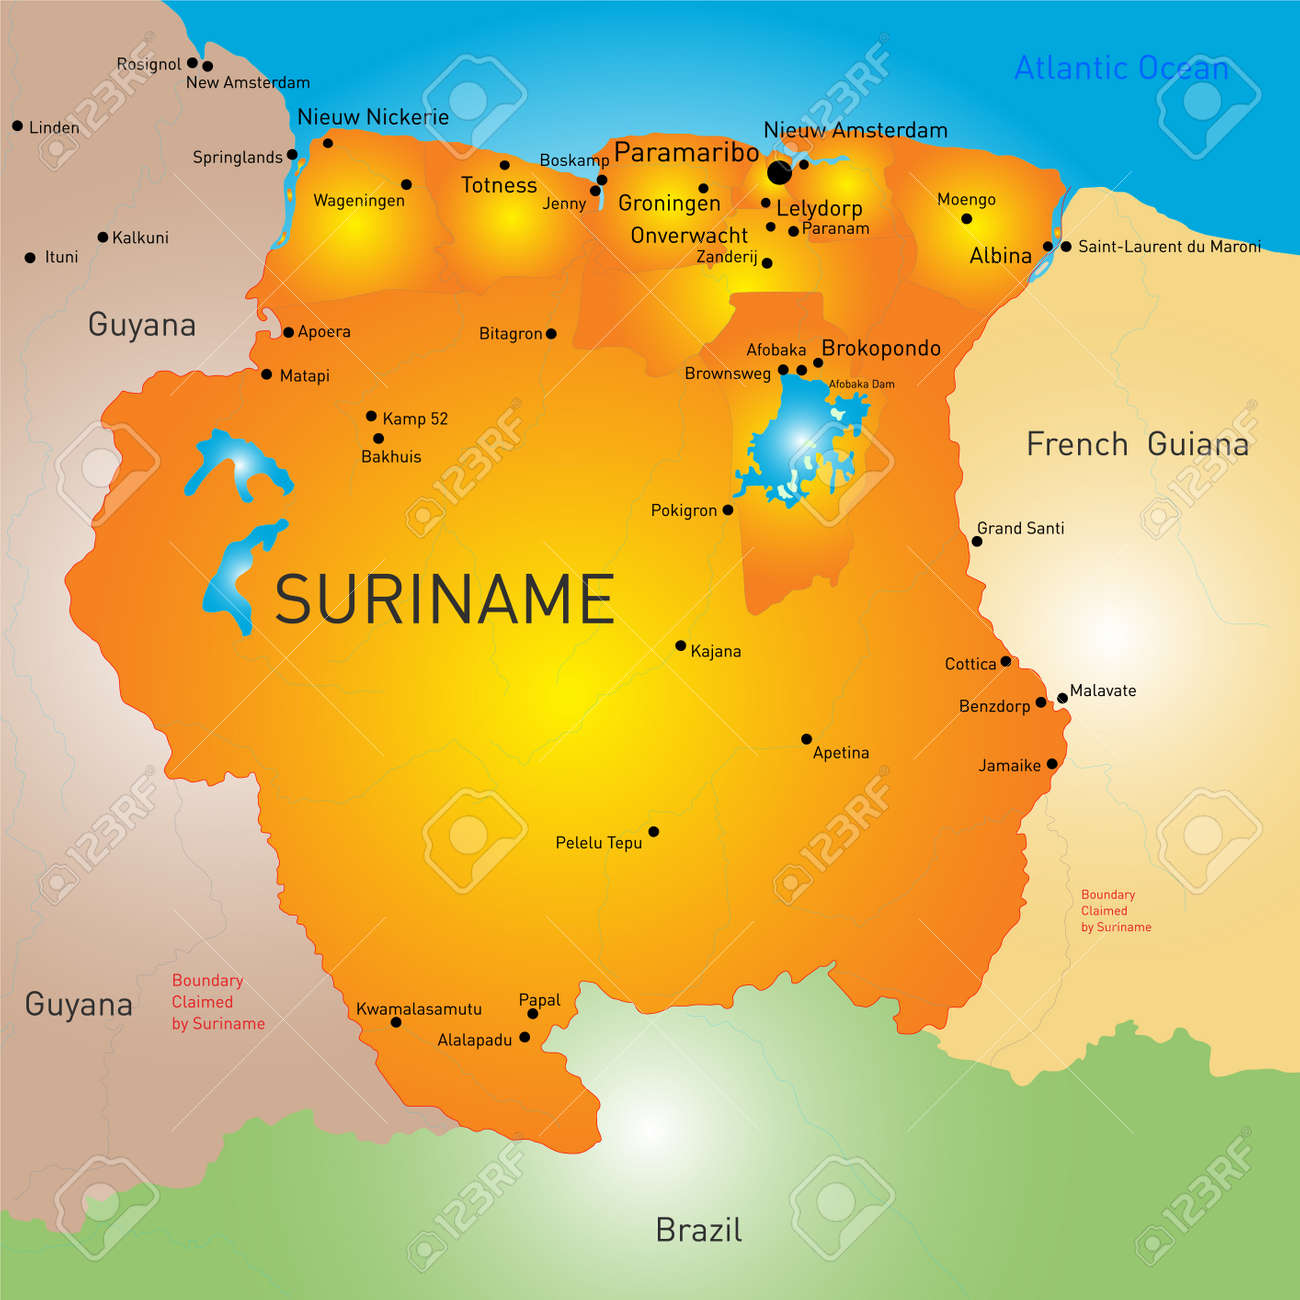 Where Is Suriname Where Is Suriname Located In The World - paramaribo map